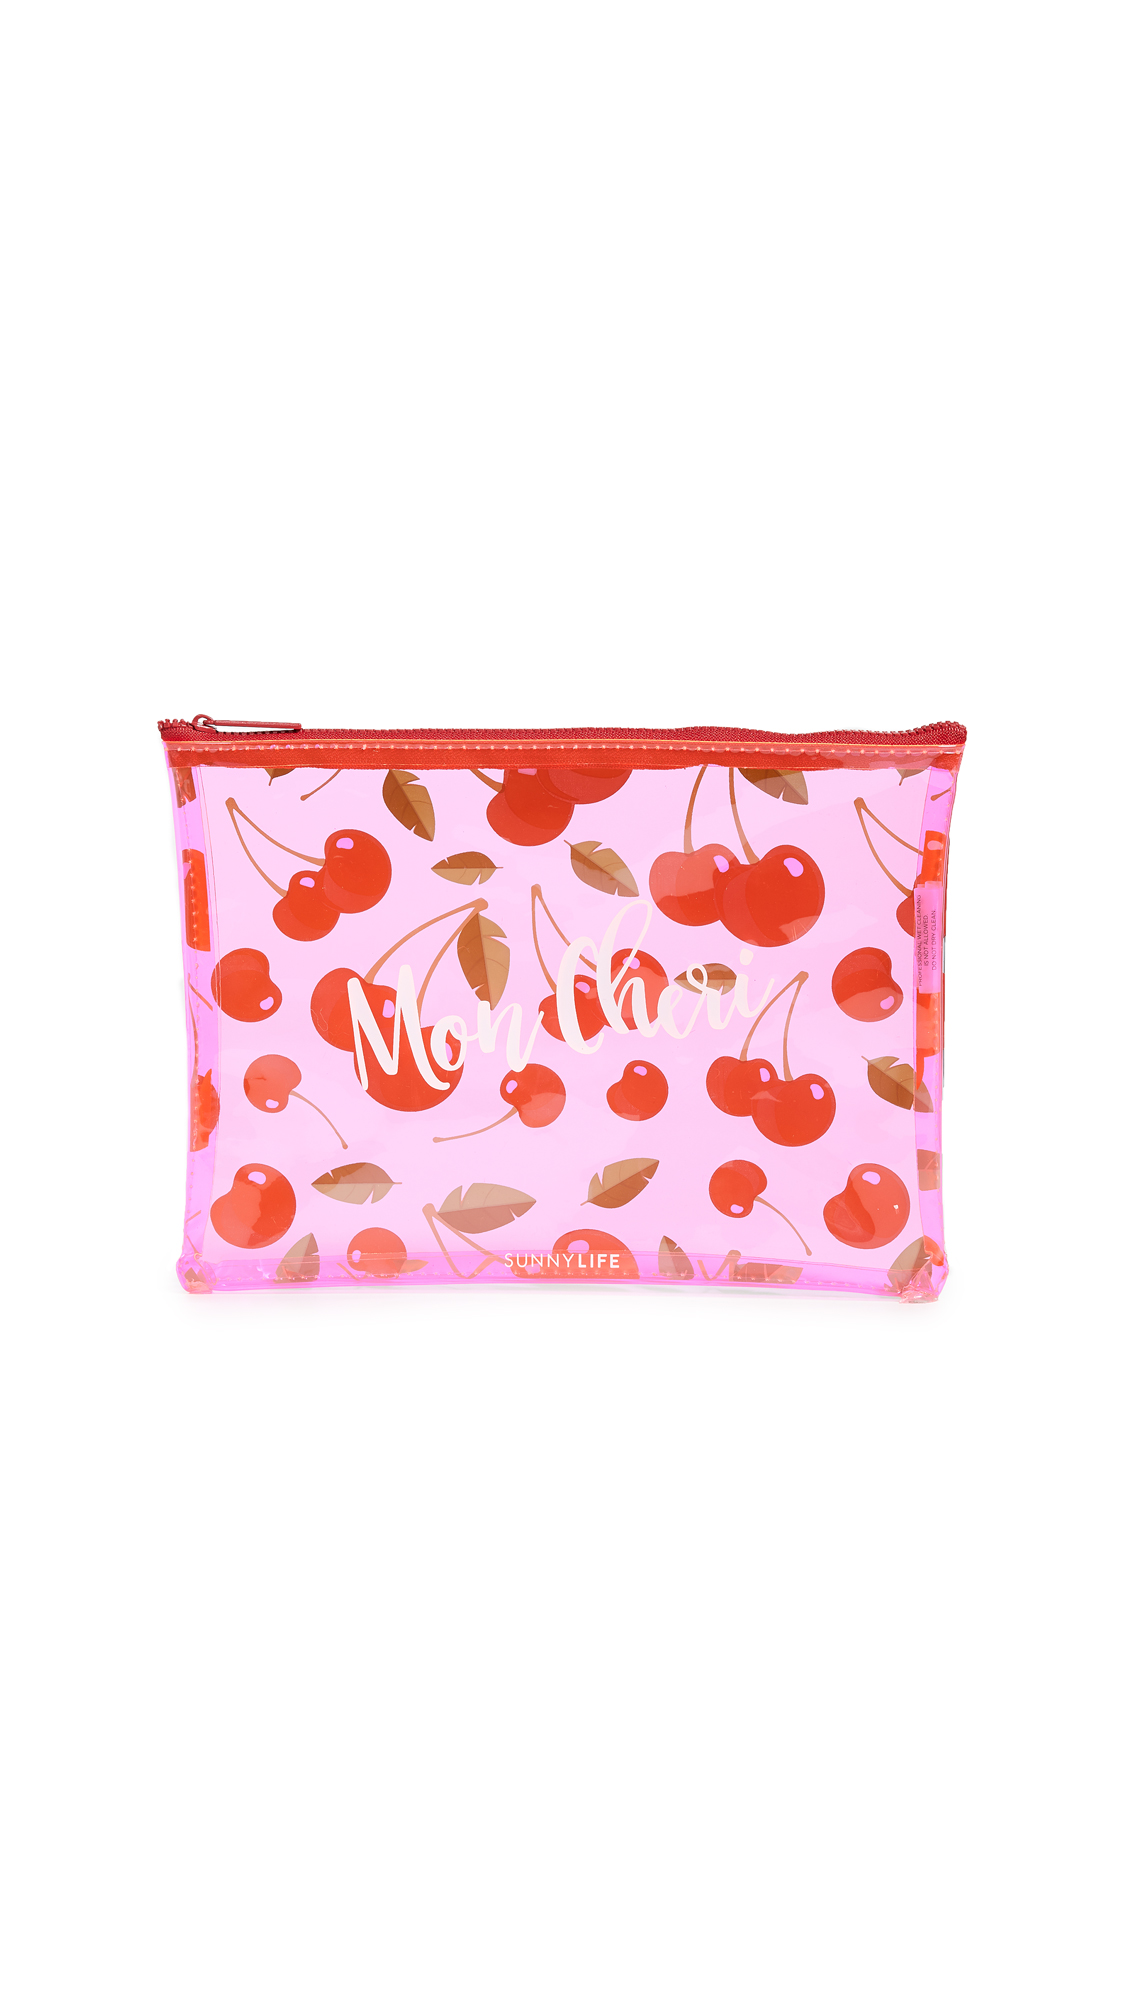 SUNNYLIFE Cherry See Thru Pouch in Red/Pink